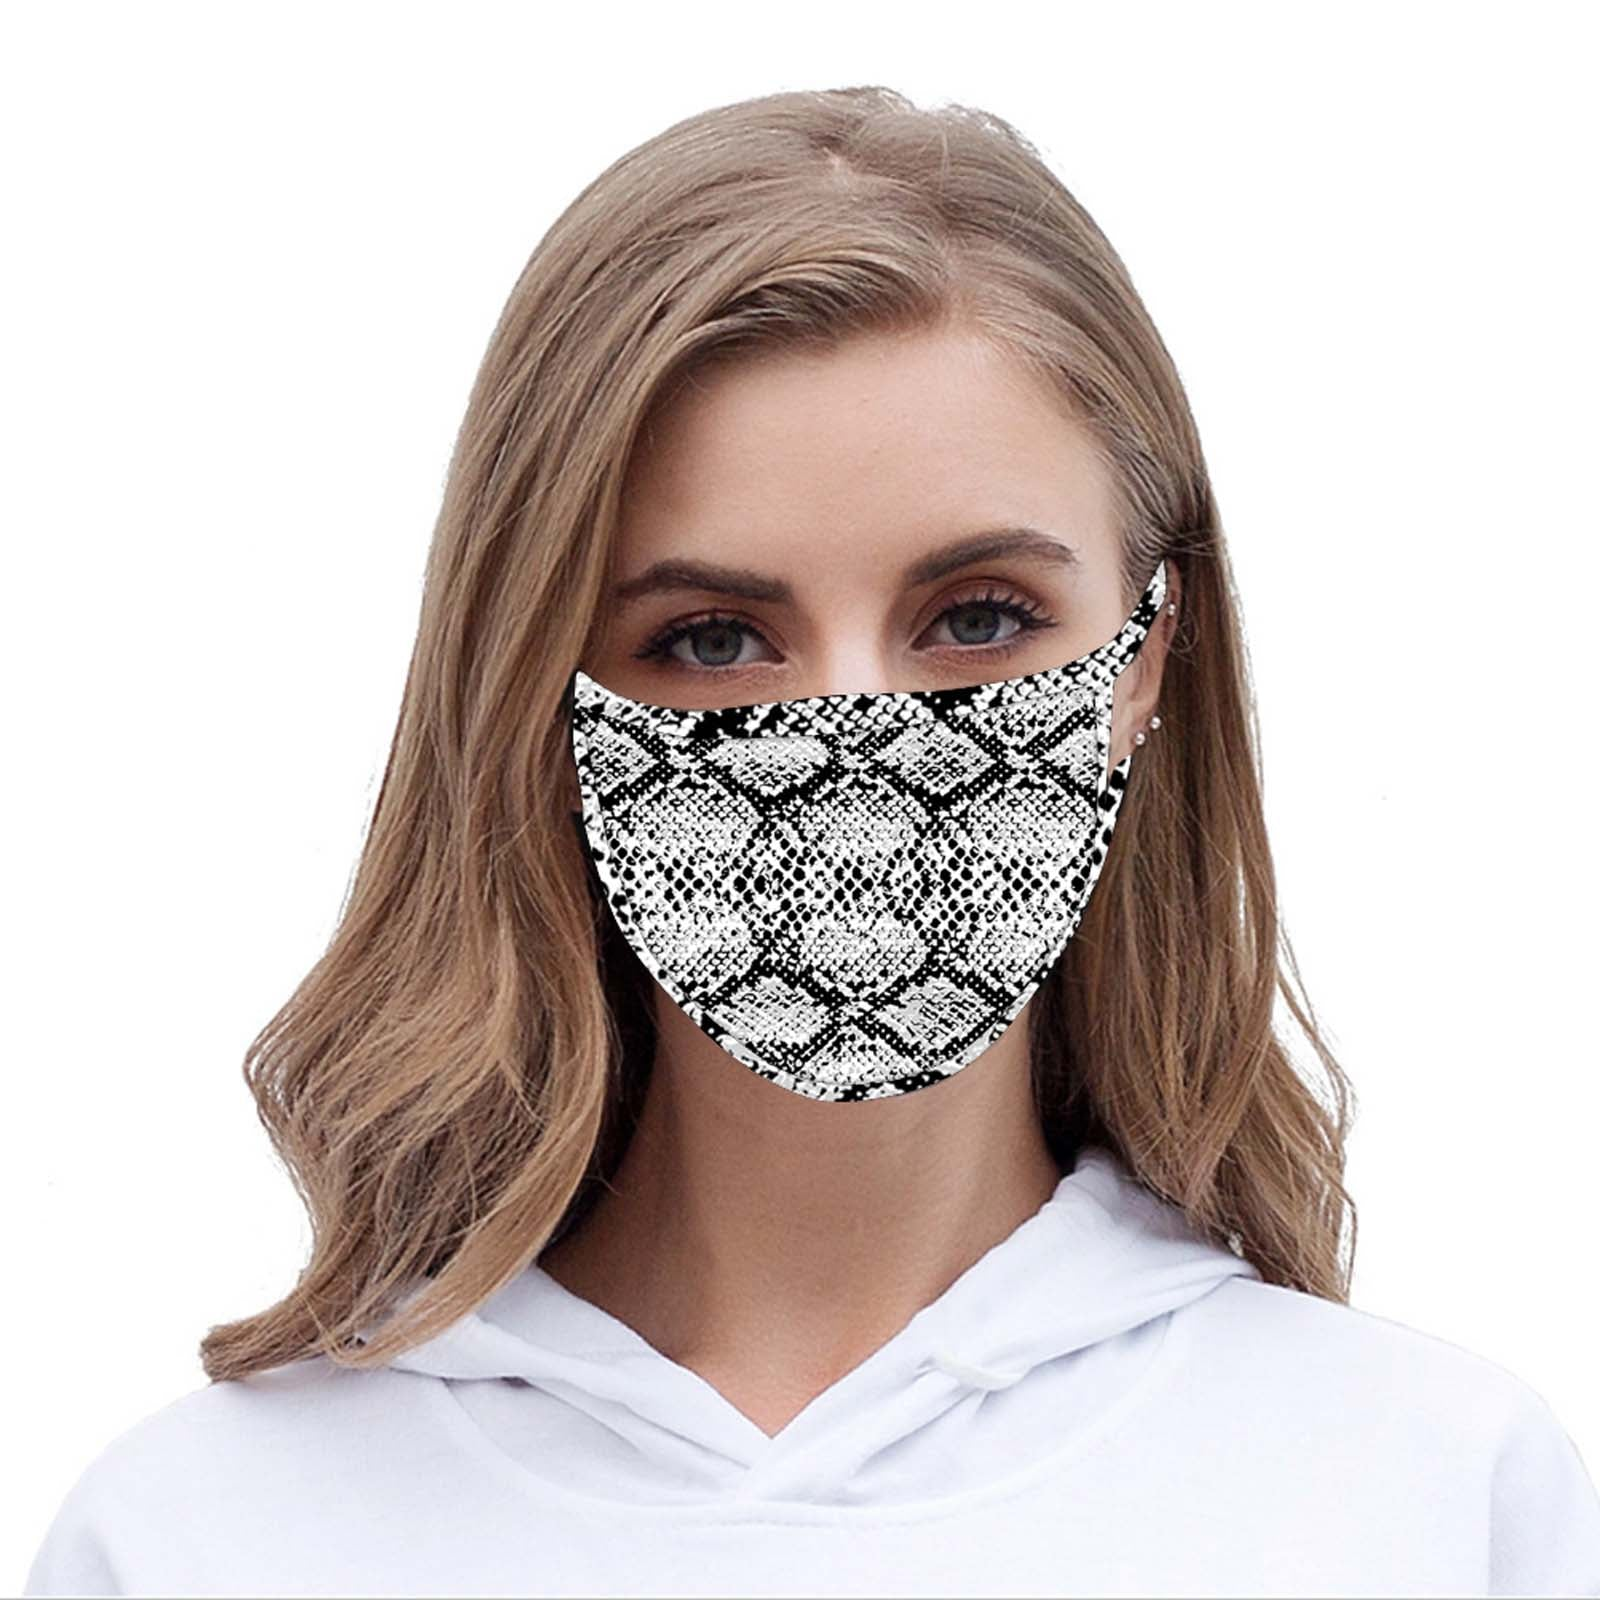 FCM-068 American Bling Snake Print Cloth Face Mask 1Pc Fashion Mask.